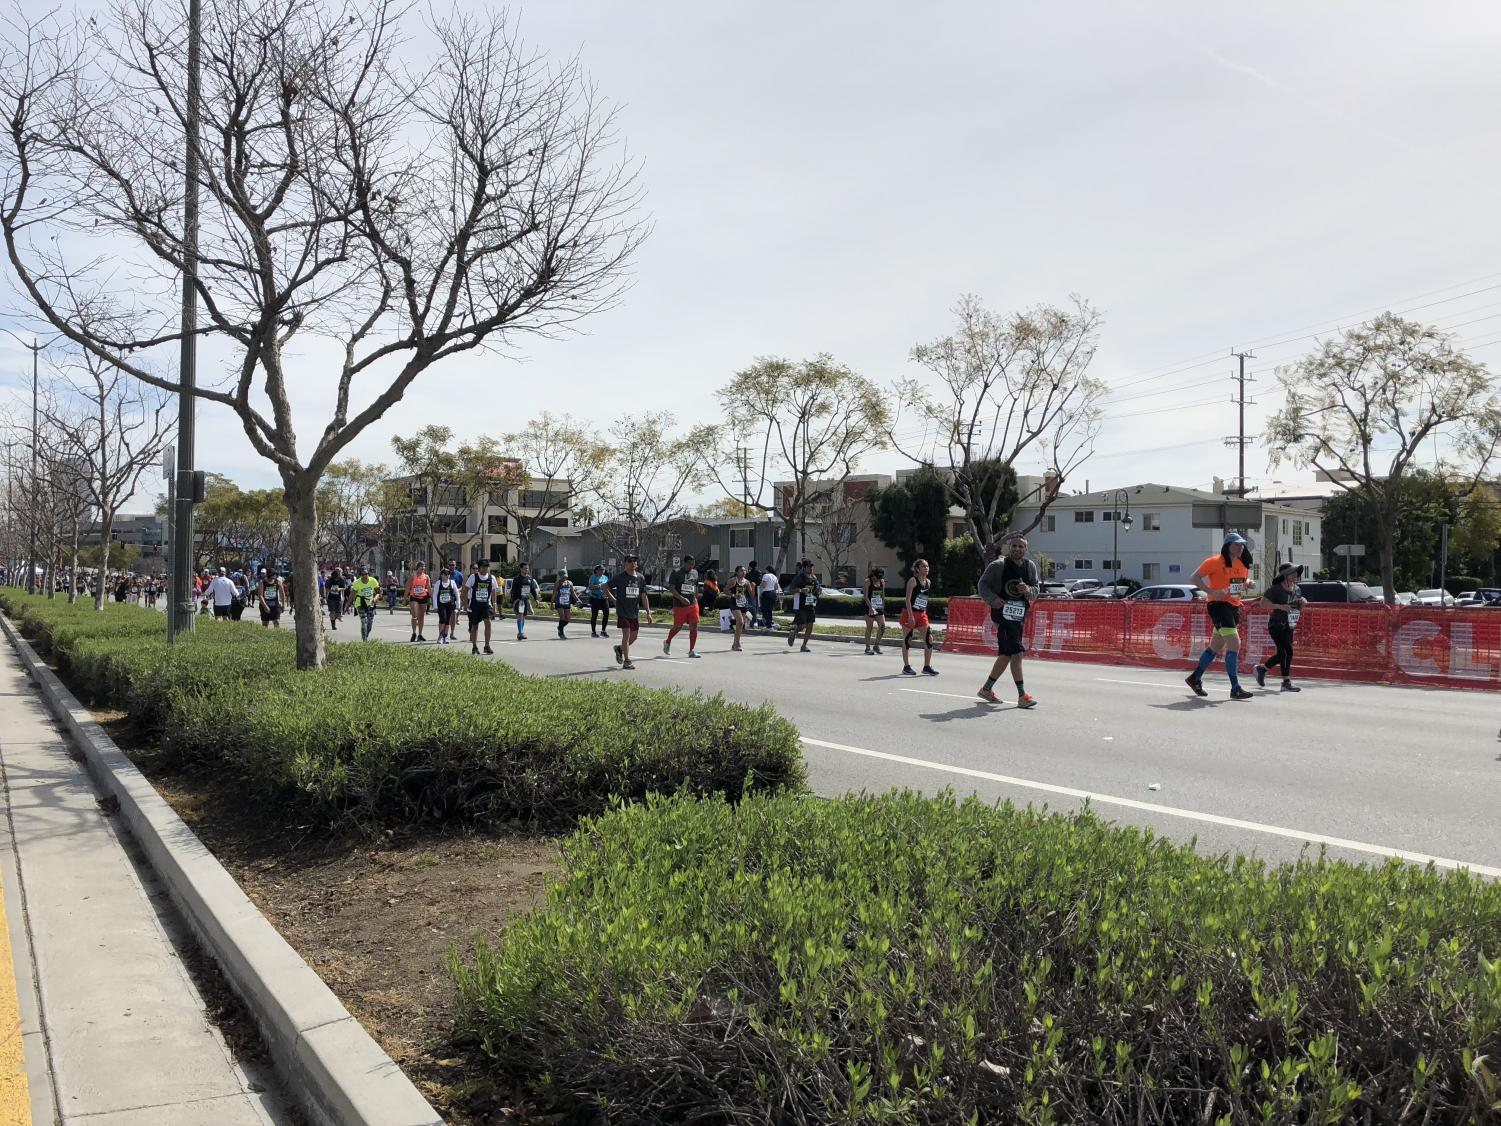 Los Angeles Marathon runners travel through Westwood. The marathon took place on Mar. 18 with a route that went from Dodger Stadium to the Santa Monica Pier.